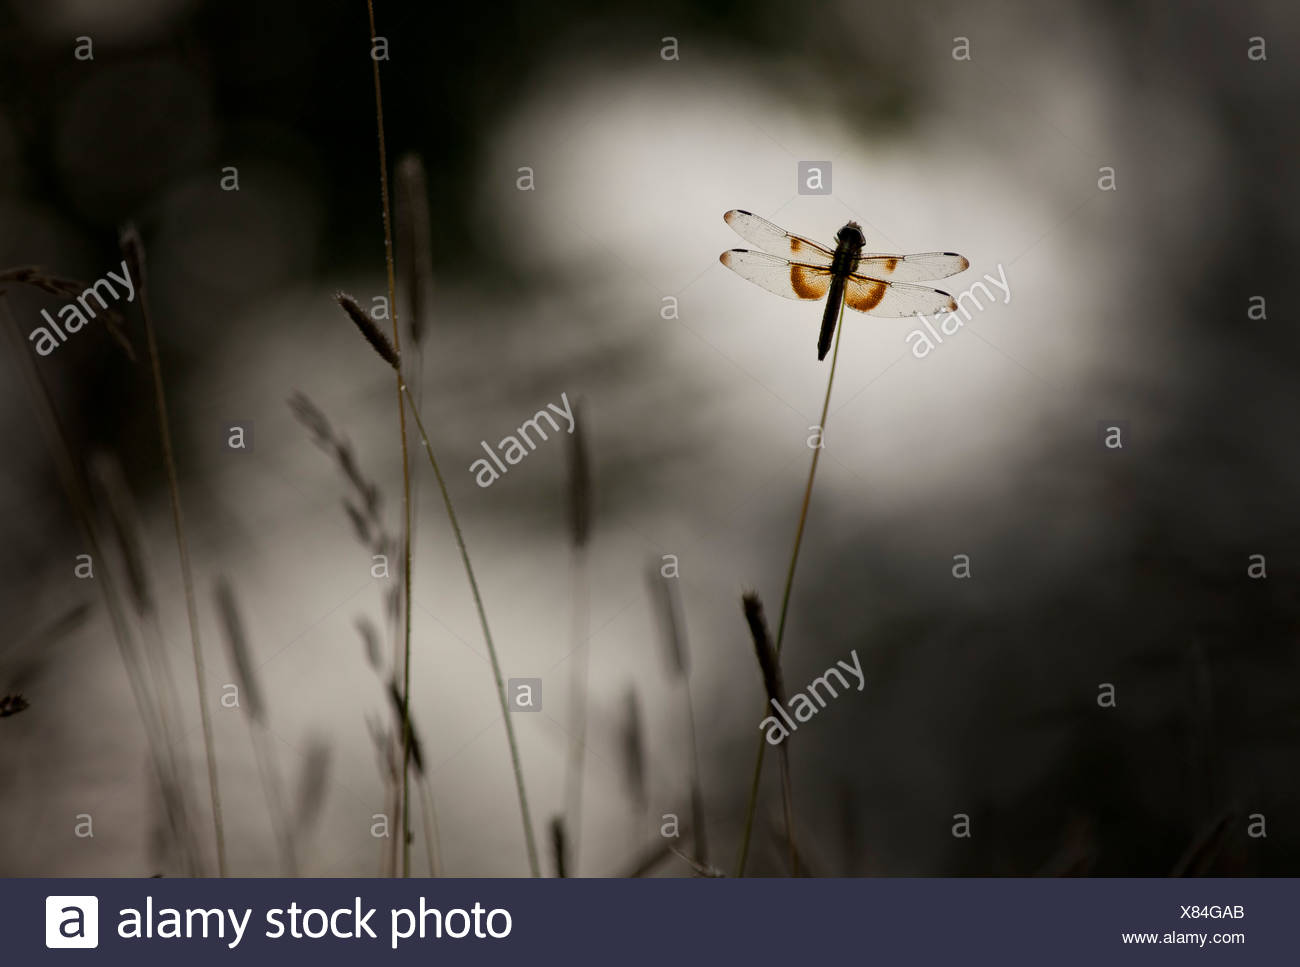 A Widow Skimmer dragonfly's wings stand out amidst the mute colors of a pre-dawn morning. (Libellula luctuosa) - Stock Image